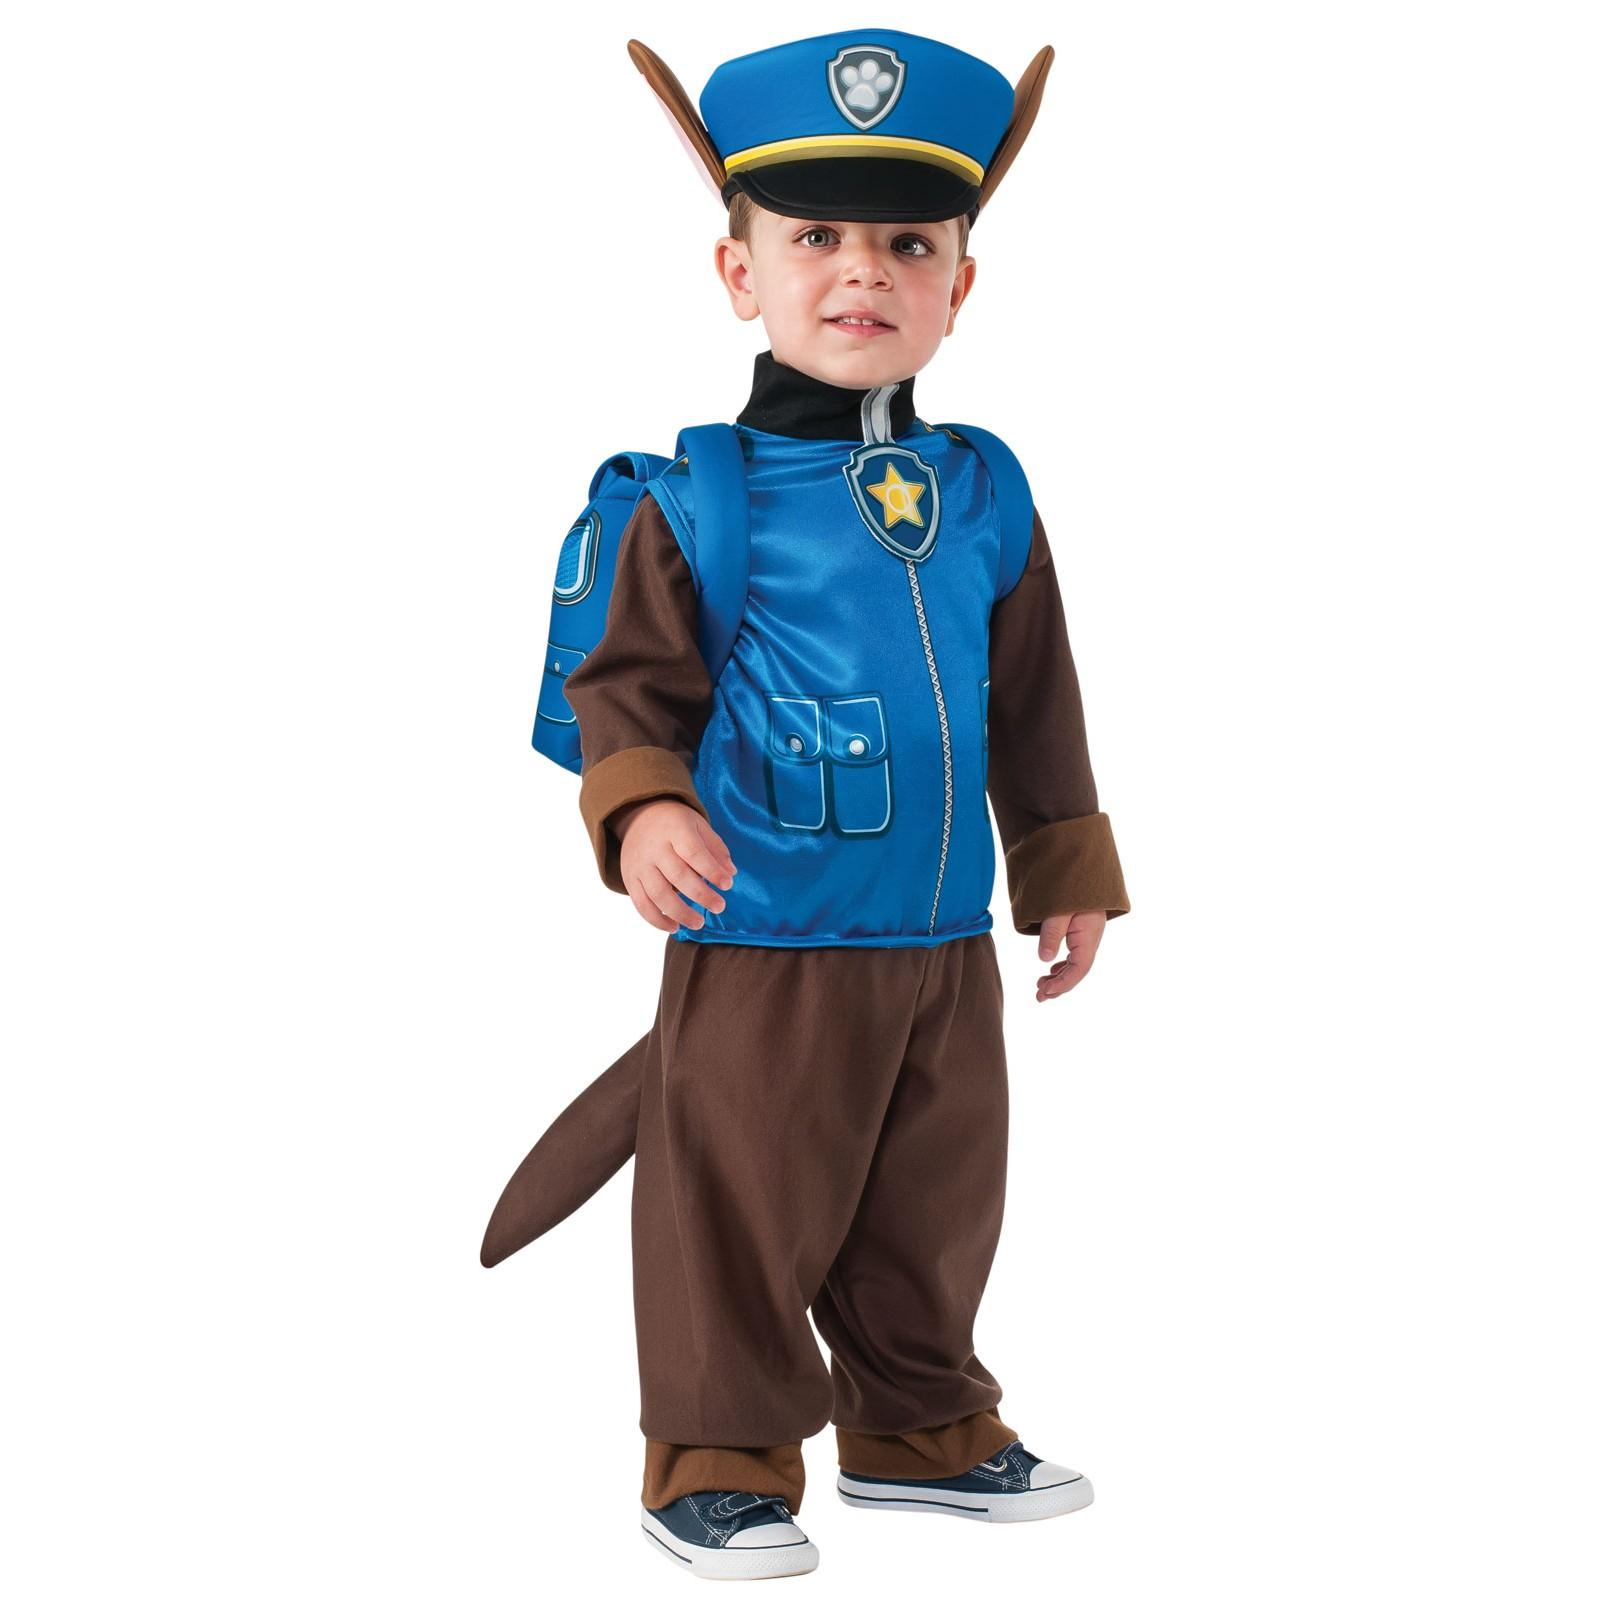 Paw Patrol - Chase Toddler Kids Costume Top 10 Kids Costumes for 2015  sc 1 st  GreatGets.com & Top 10 Kids Costumes for 2015 | Halloween | GreatGets.com